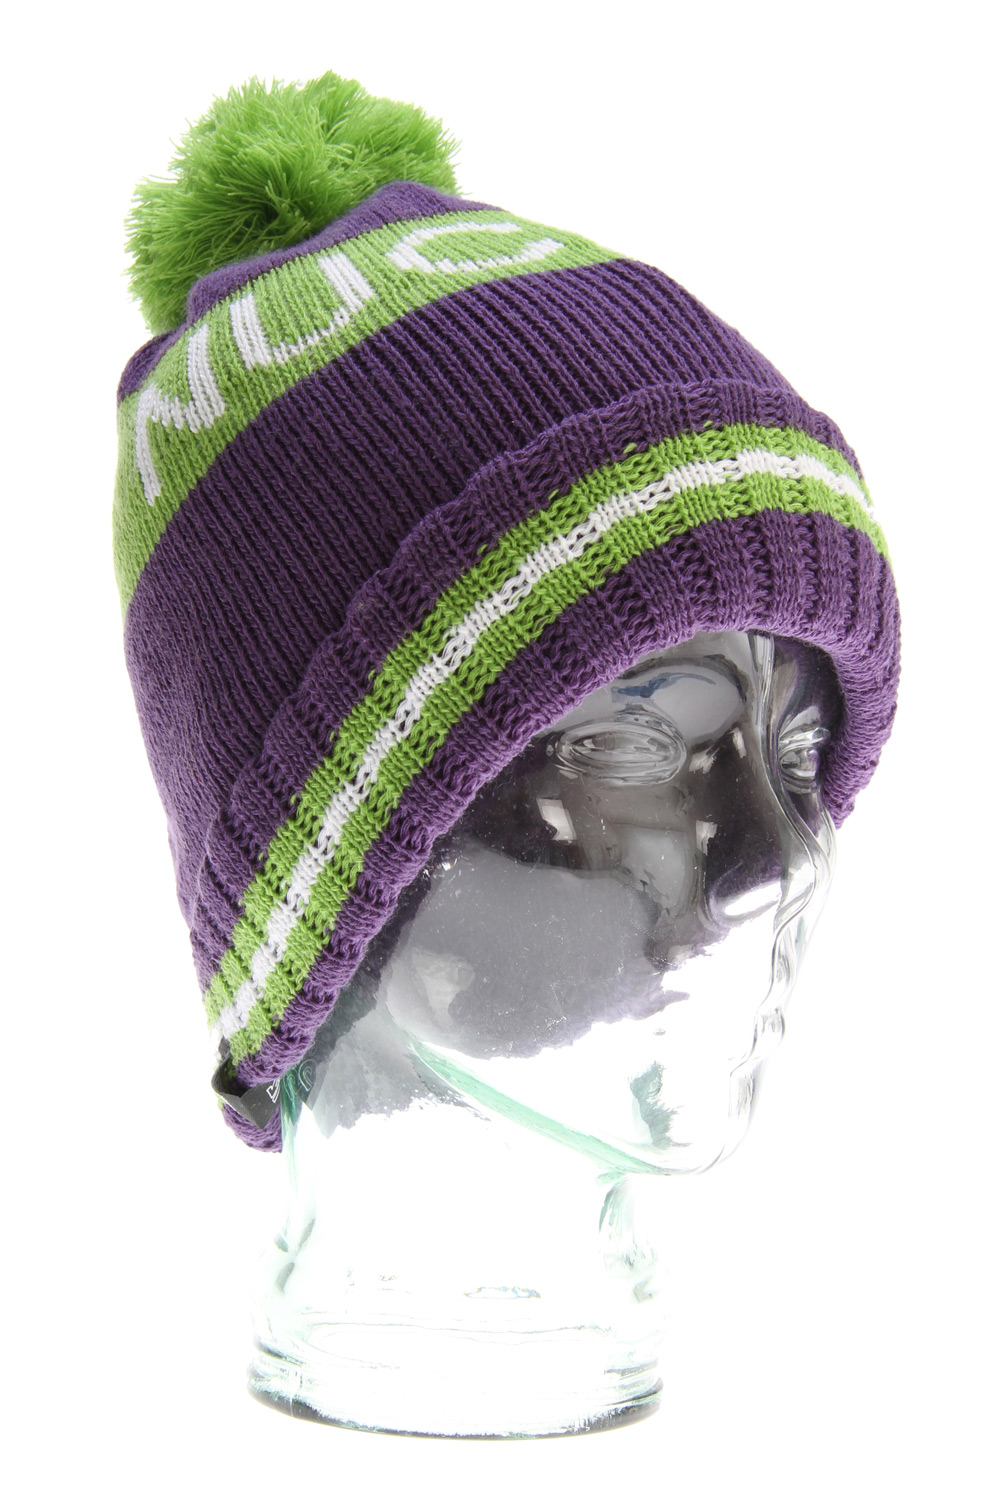 Snowboard The Burton Roast Beef Beanie. Vintage Striped Beanie with Stitched Old School Shred Vernacular, 100% Acrylic - Super Slouch/Fold Up Fit. - $19.95